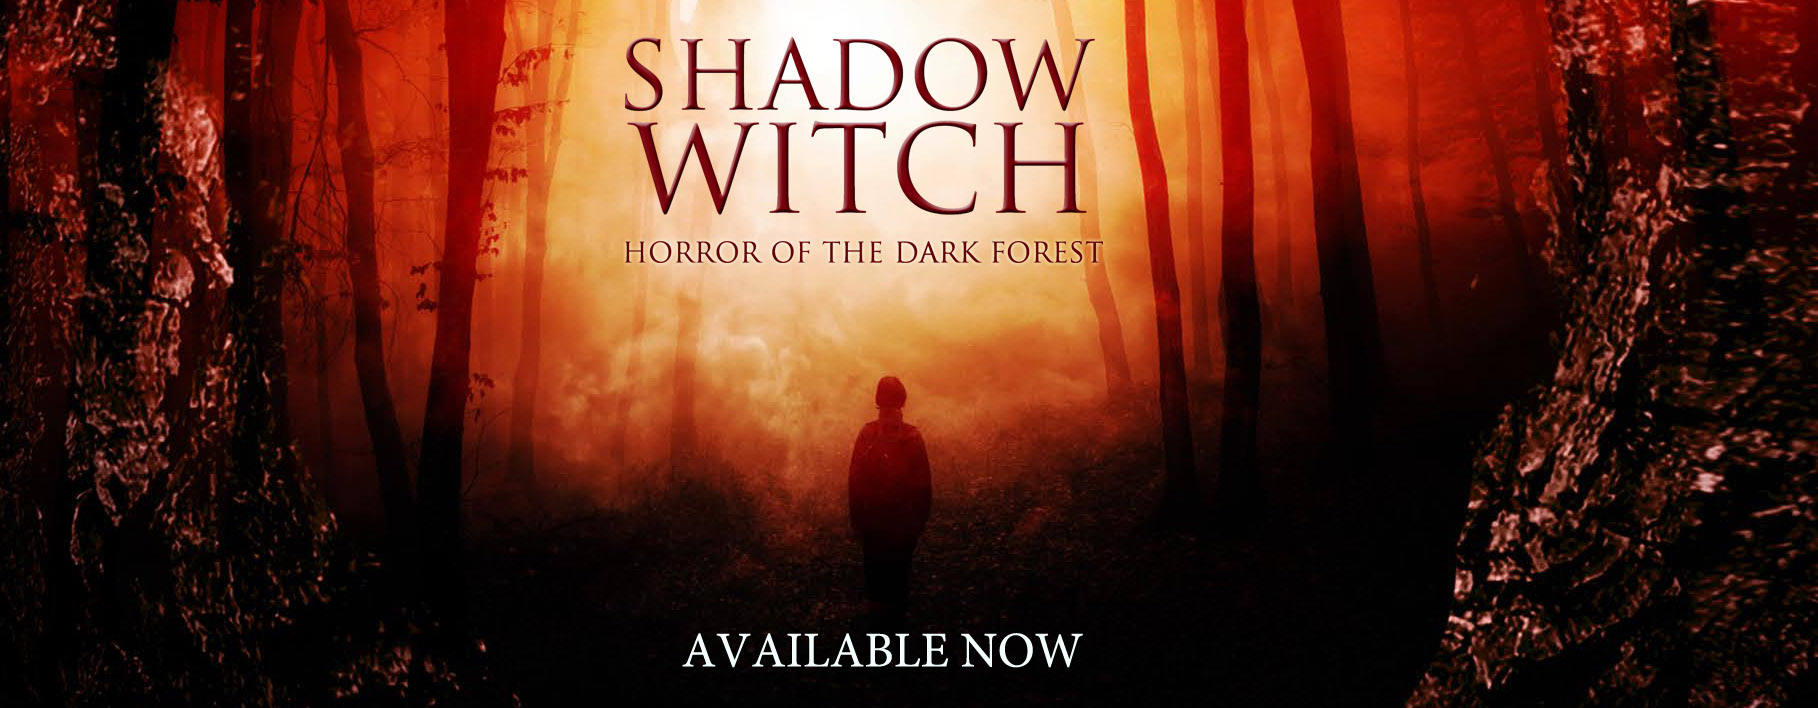 Shadow Witch Horror Novel Release Date